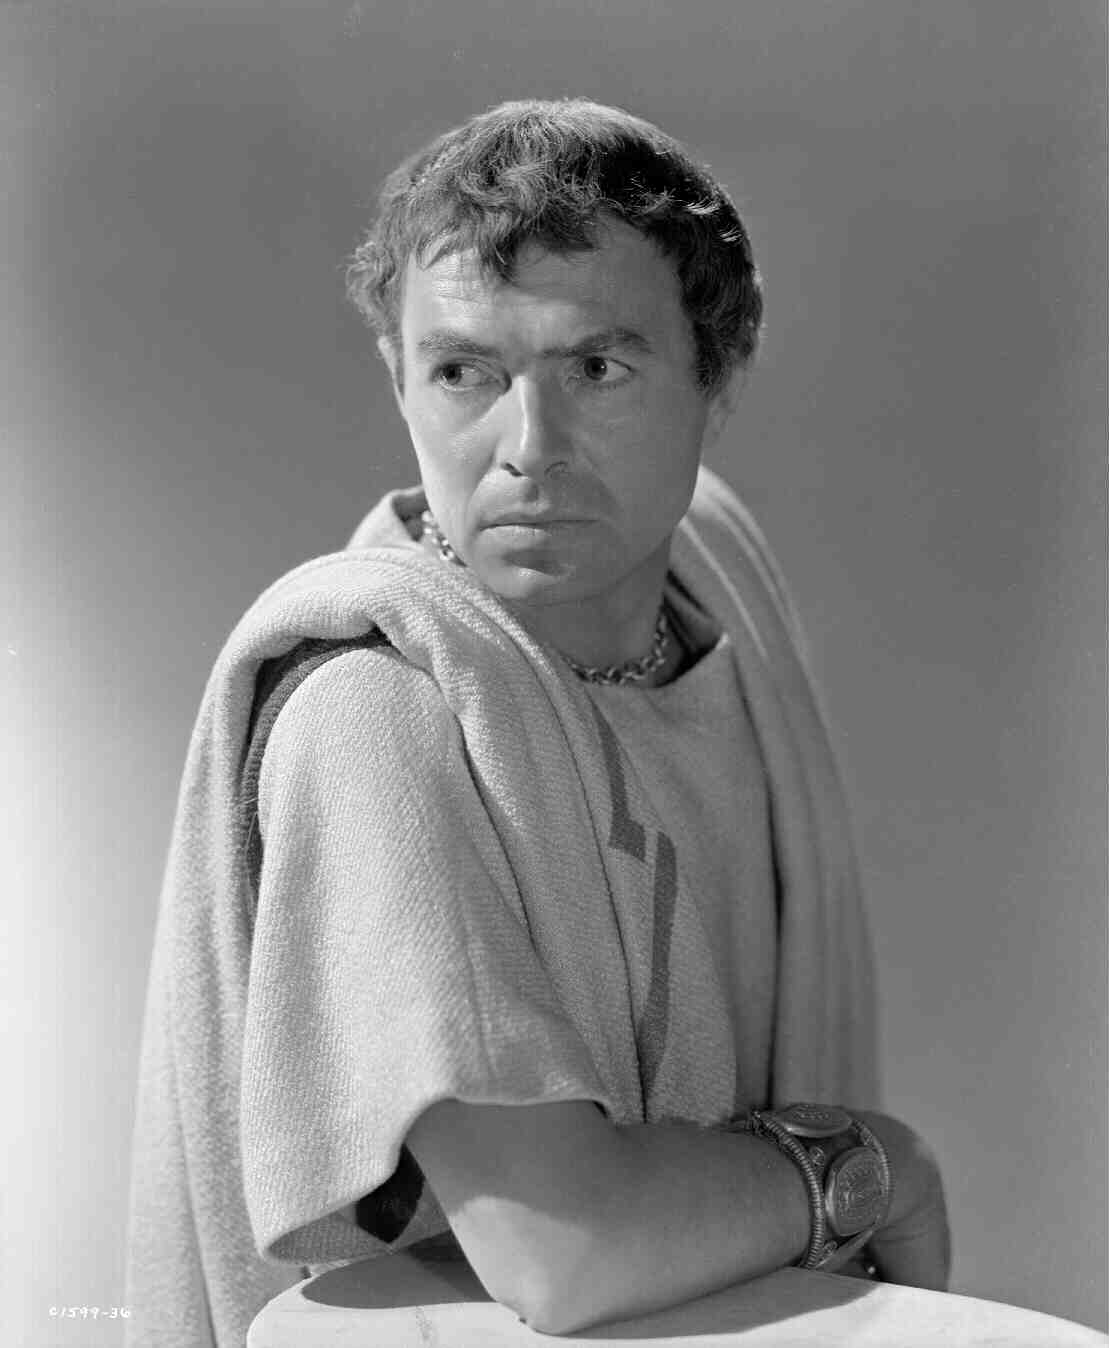 the tragedy of marcus brutus Brutus is one of the central characters in the play 'julius caesar' written by william shakespeare brutus' character is complex, and he is often thought of as a tragic hero.